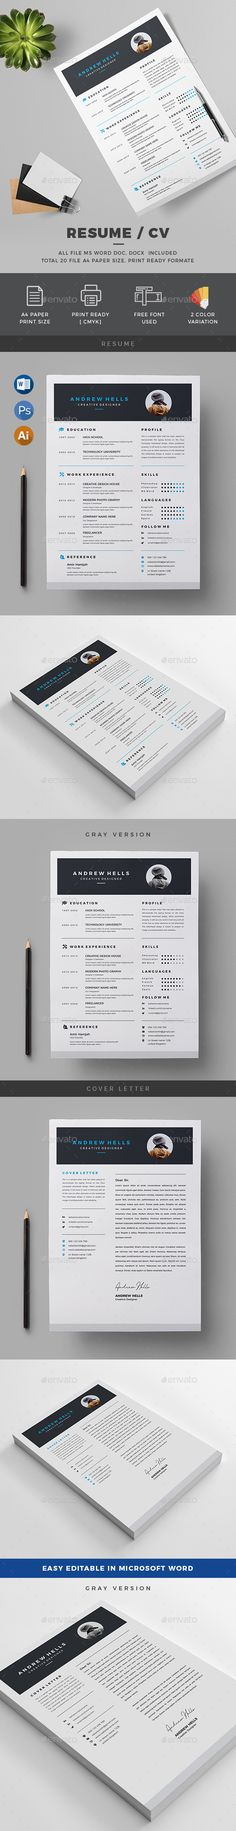 Resume/CV by generousart Features of Resume Template Color & US Letter Size With Bleeds Quick and easy to customize templatesChange Customize ea